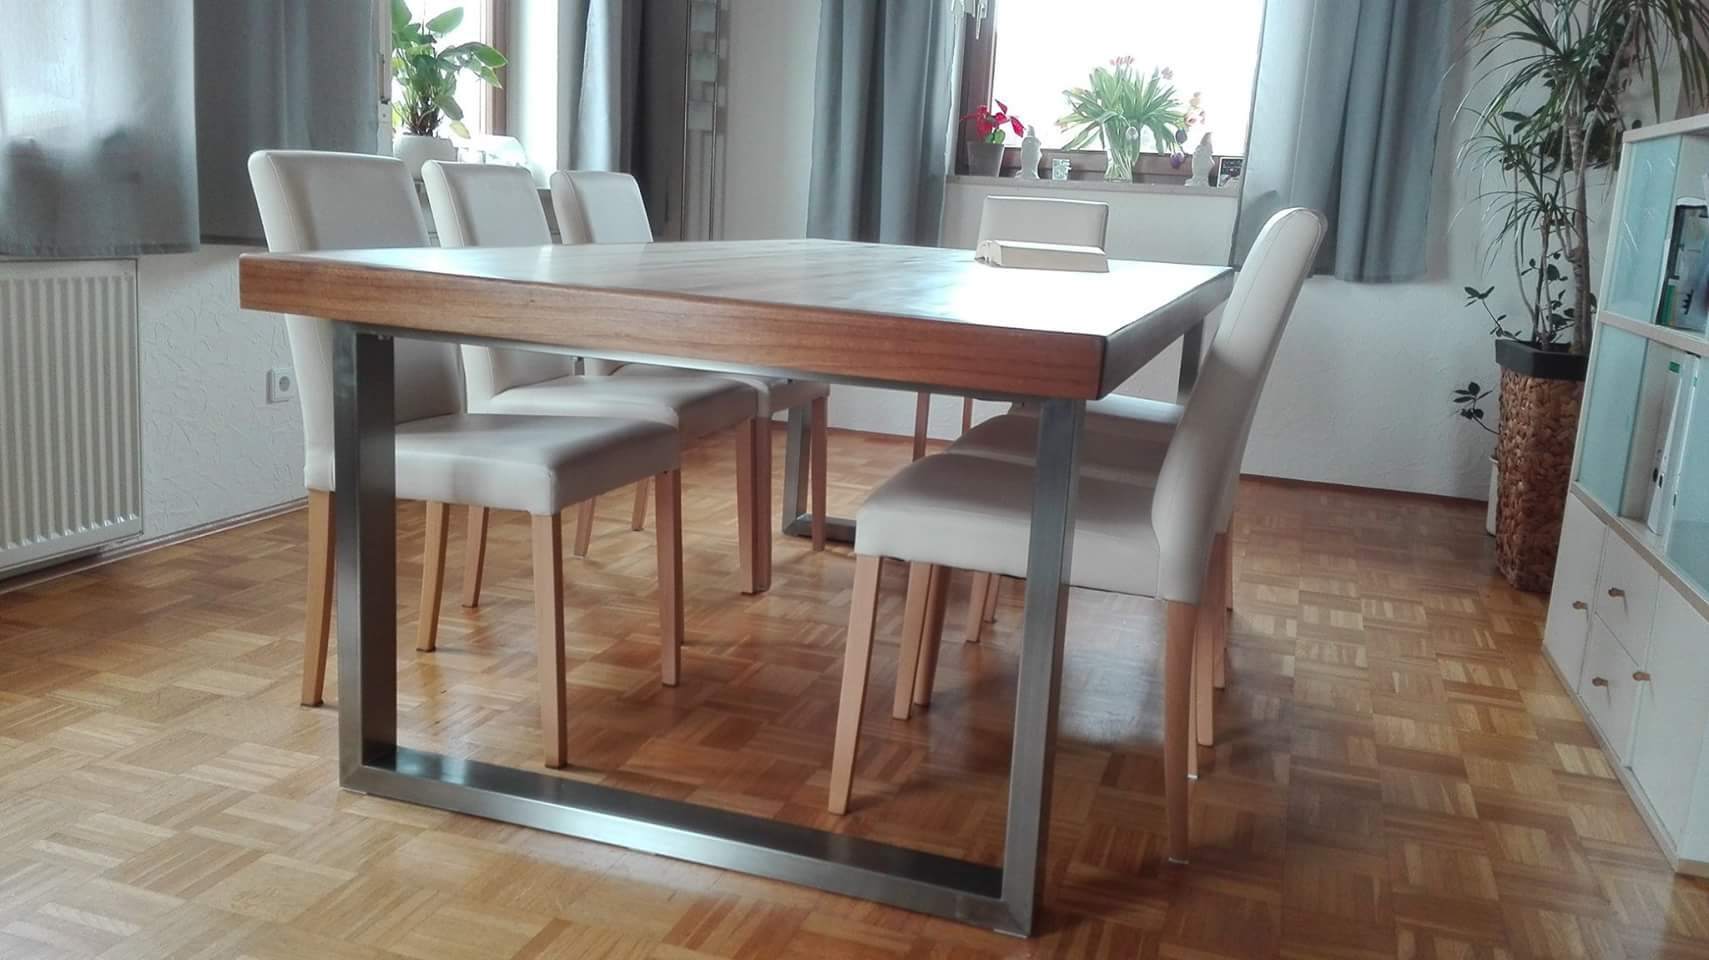 Esstisch Massiv Schreiner Mbel Boegner Tisch Perfect Table System With Mbel Boegner